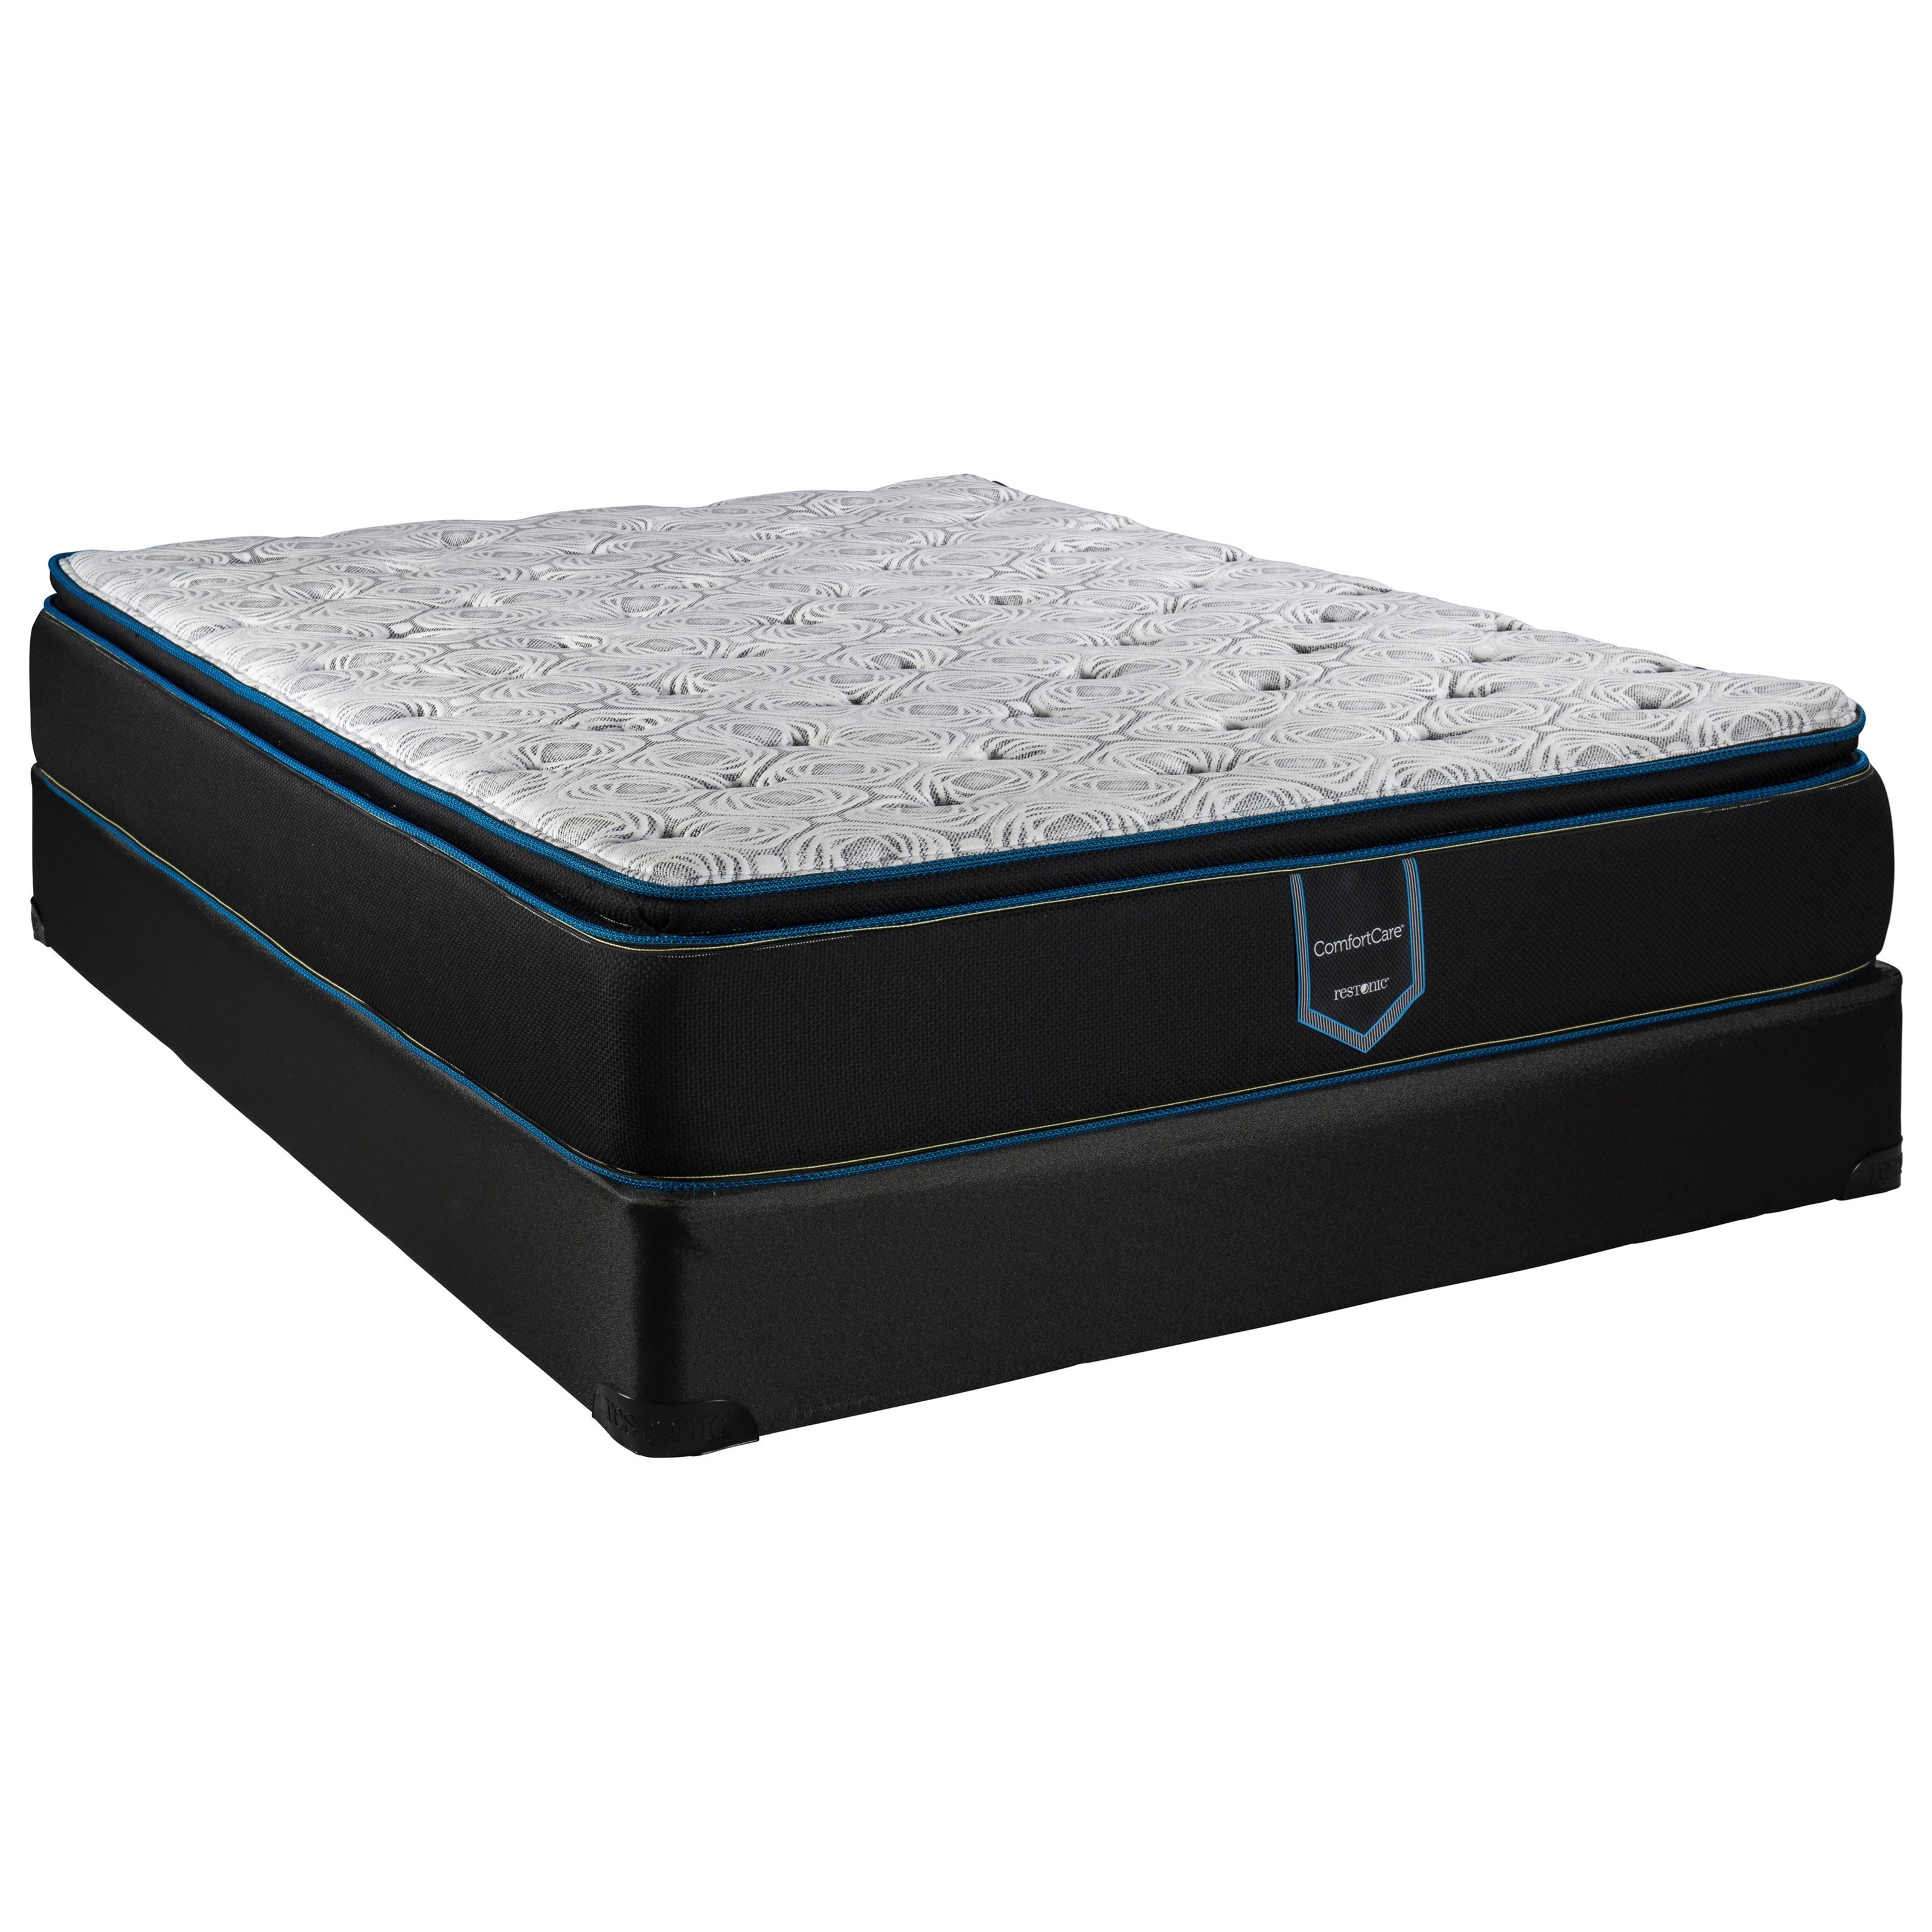 "Arcadia Pillow Top King 13"" Pillow Top Low Profile Set by Restonic at Wilcox Furniture"